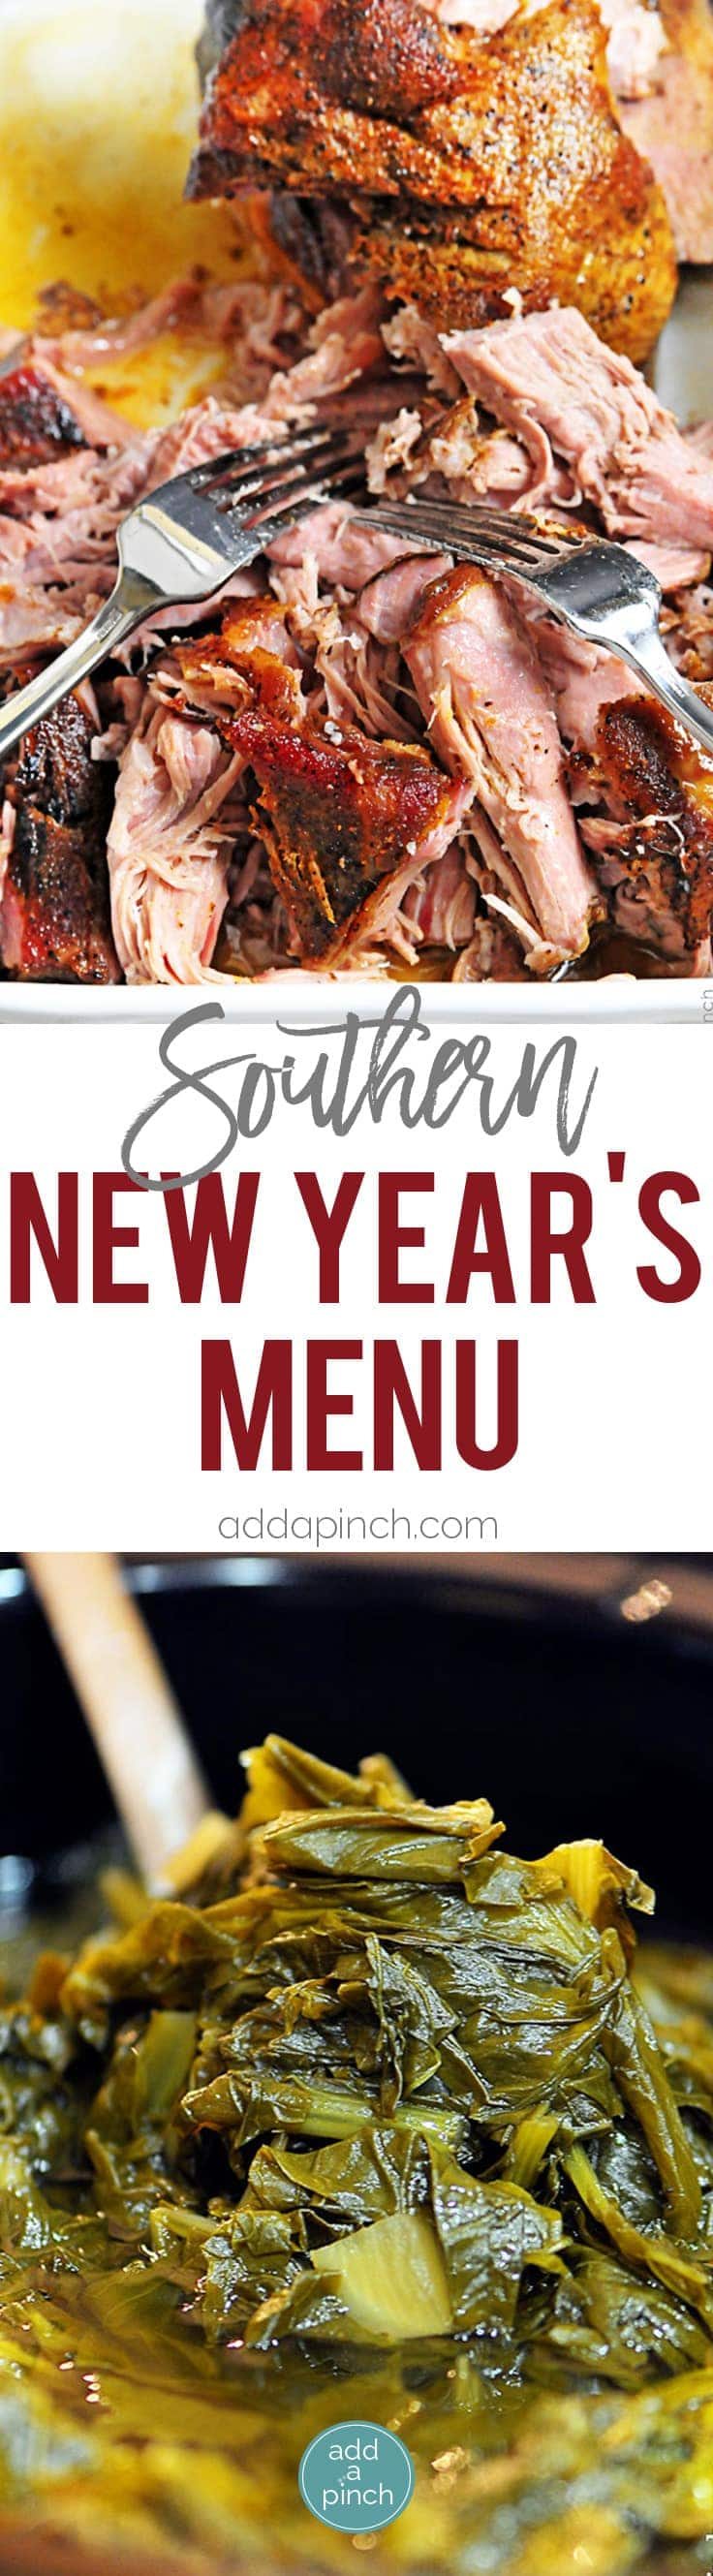 Southern New Year's Menu - Southern New Year's Menu perfect for celebrating the first day of the new year! Said to bring money, luck and prosperity in the new year!  // addapinch.com